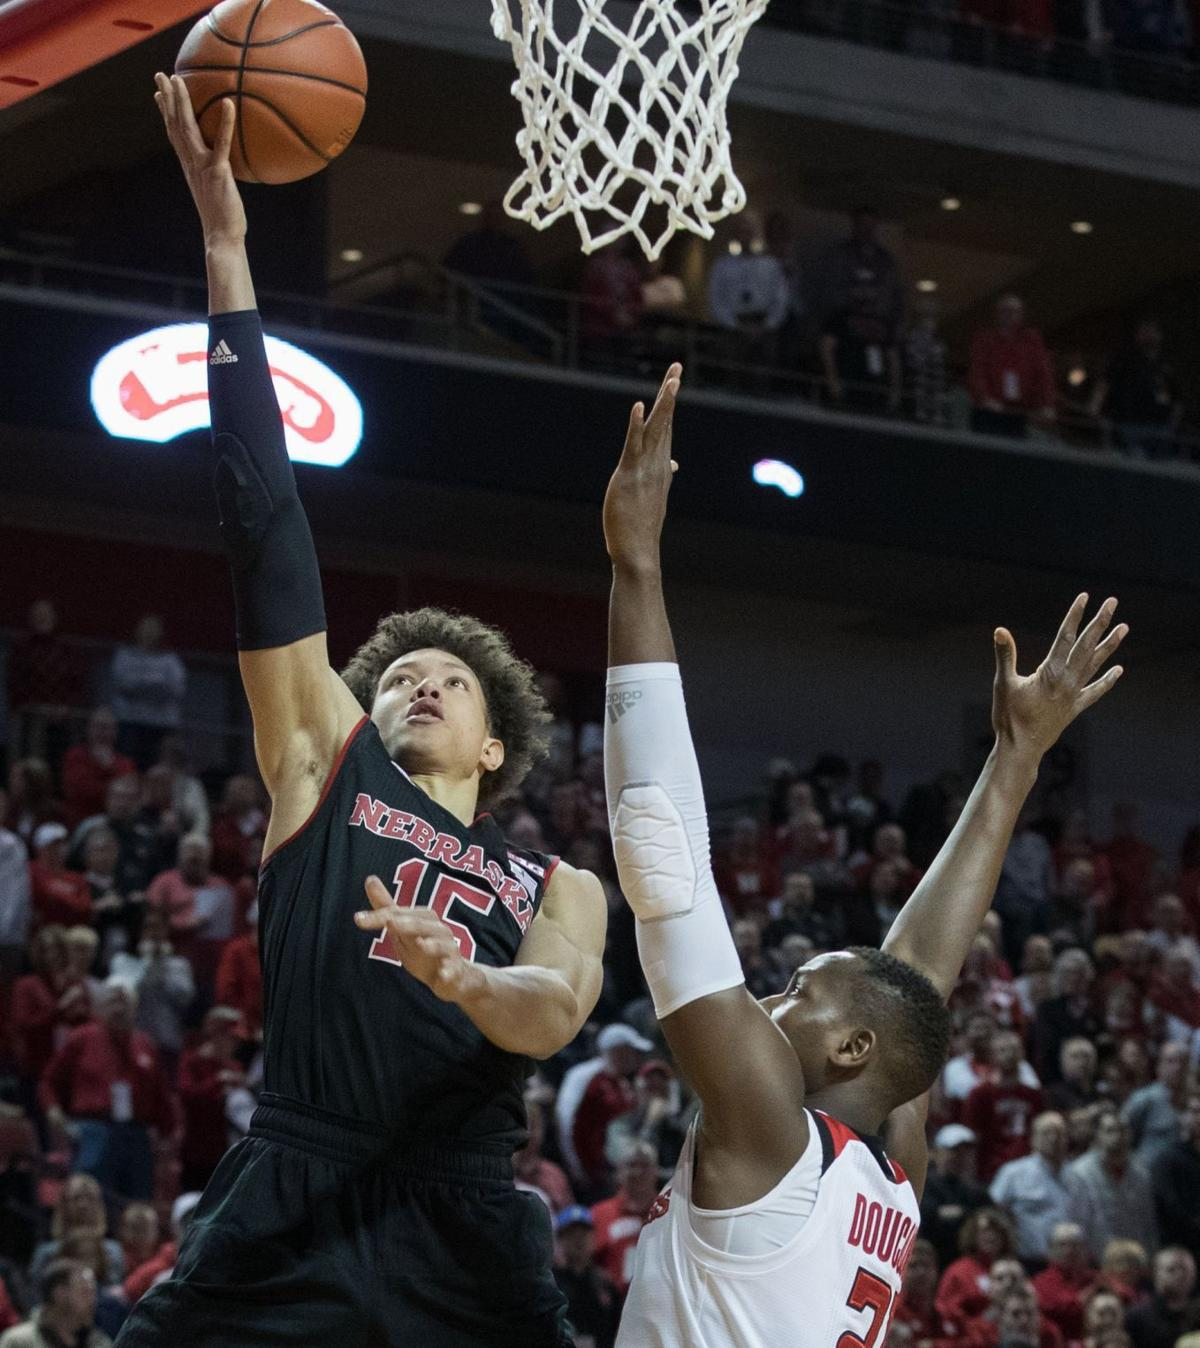 Yes, Isaiah Roby knows it, too; Husker has NBA potential and could lead NU to new heights